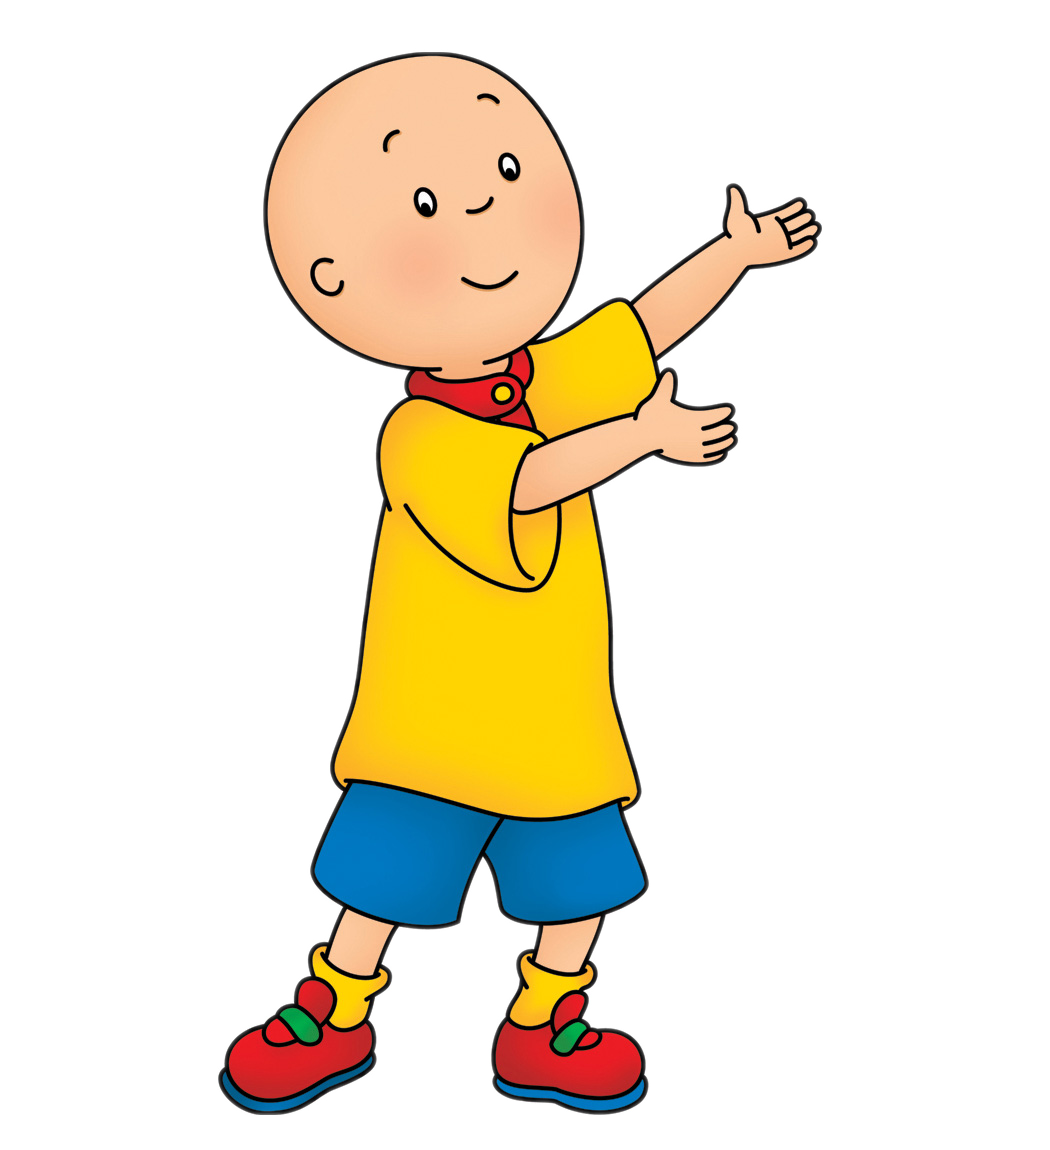 Cartoon Characters With In Name : Cartoon characters new character png pictures